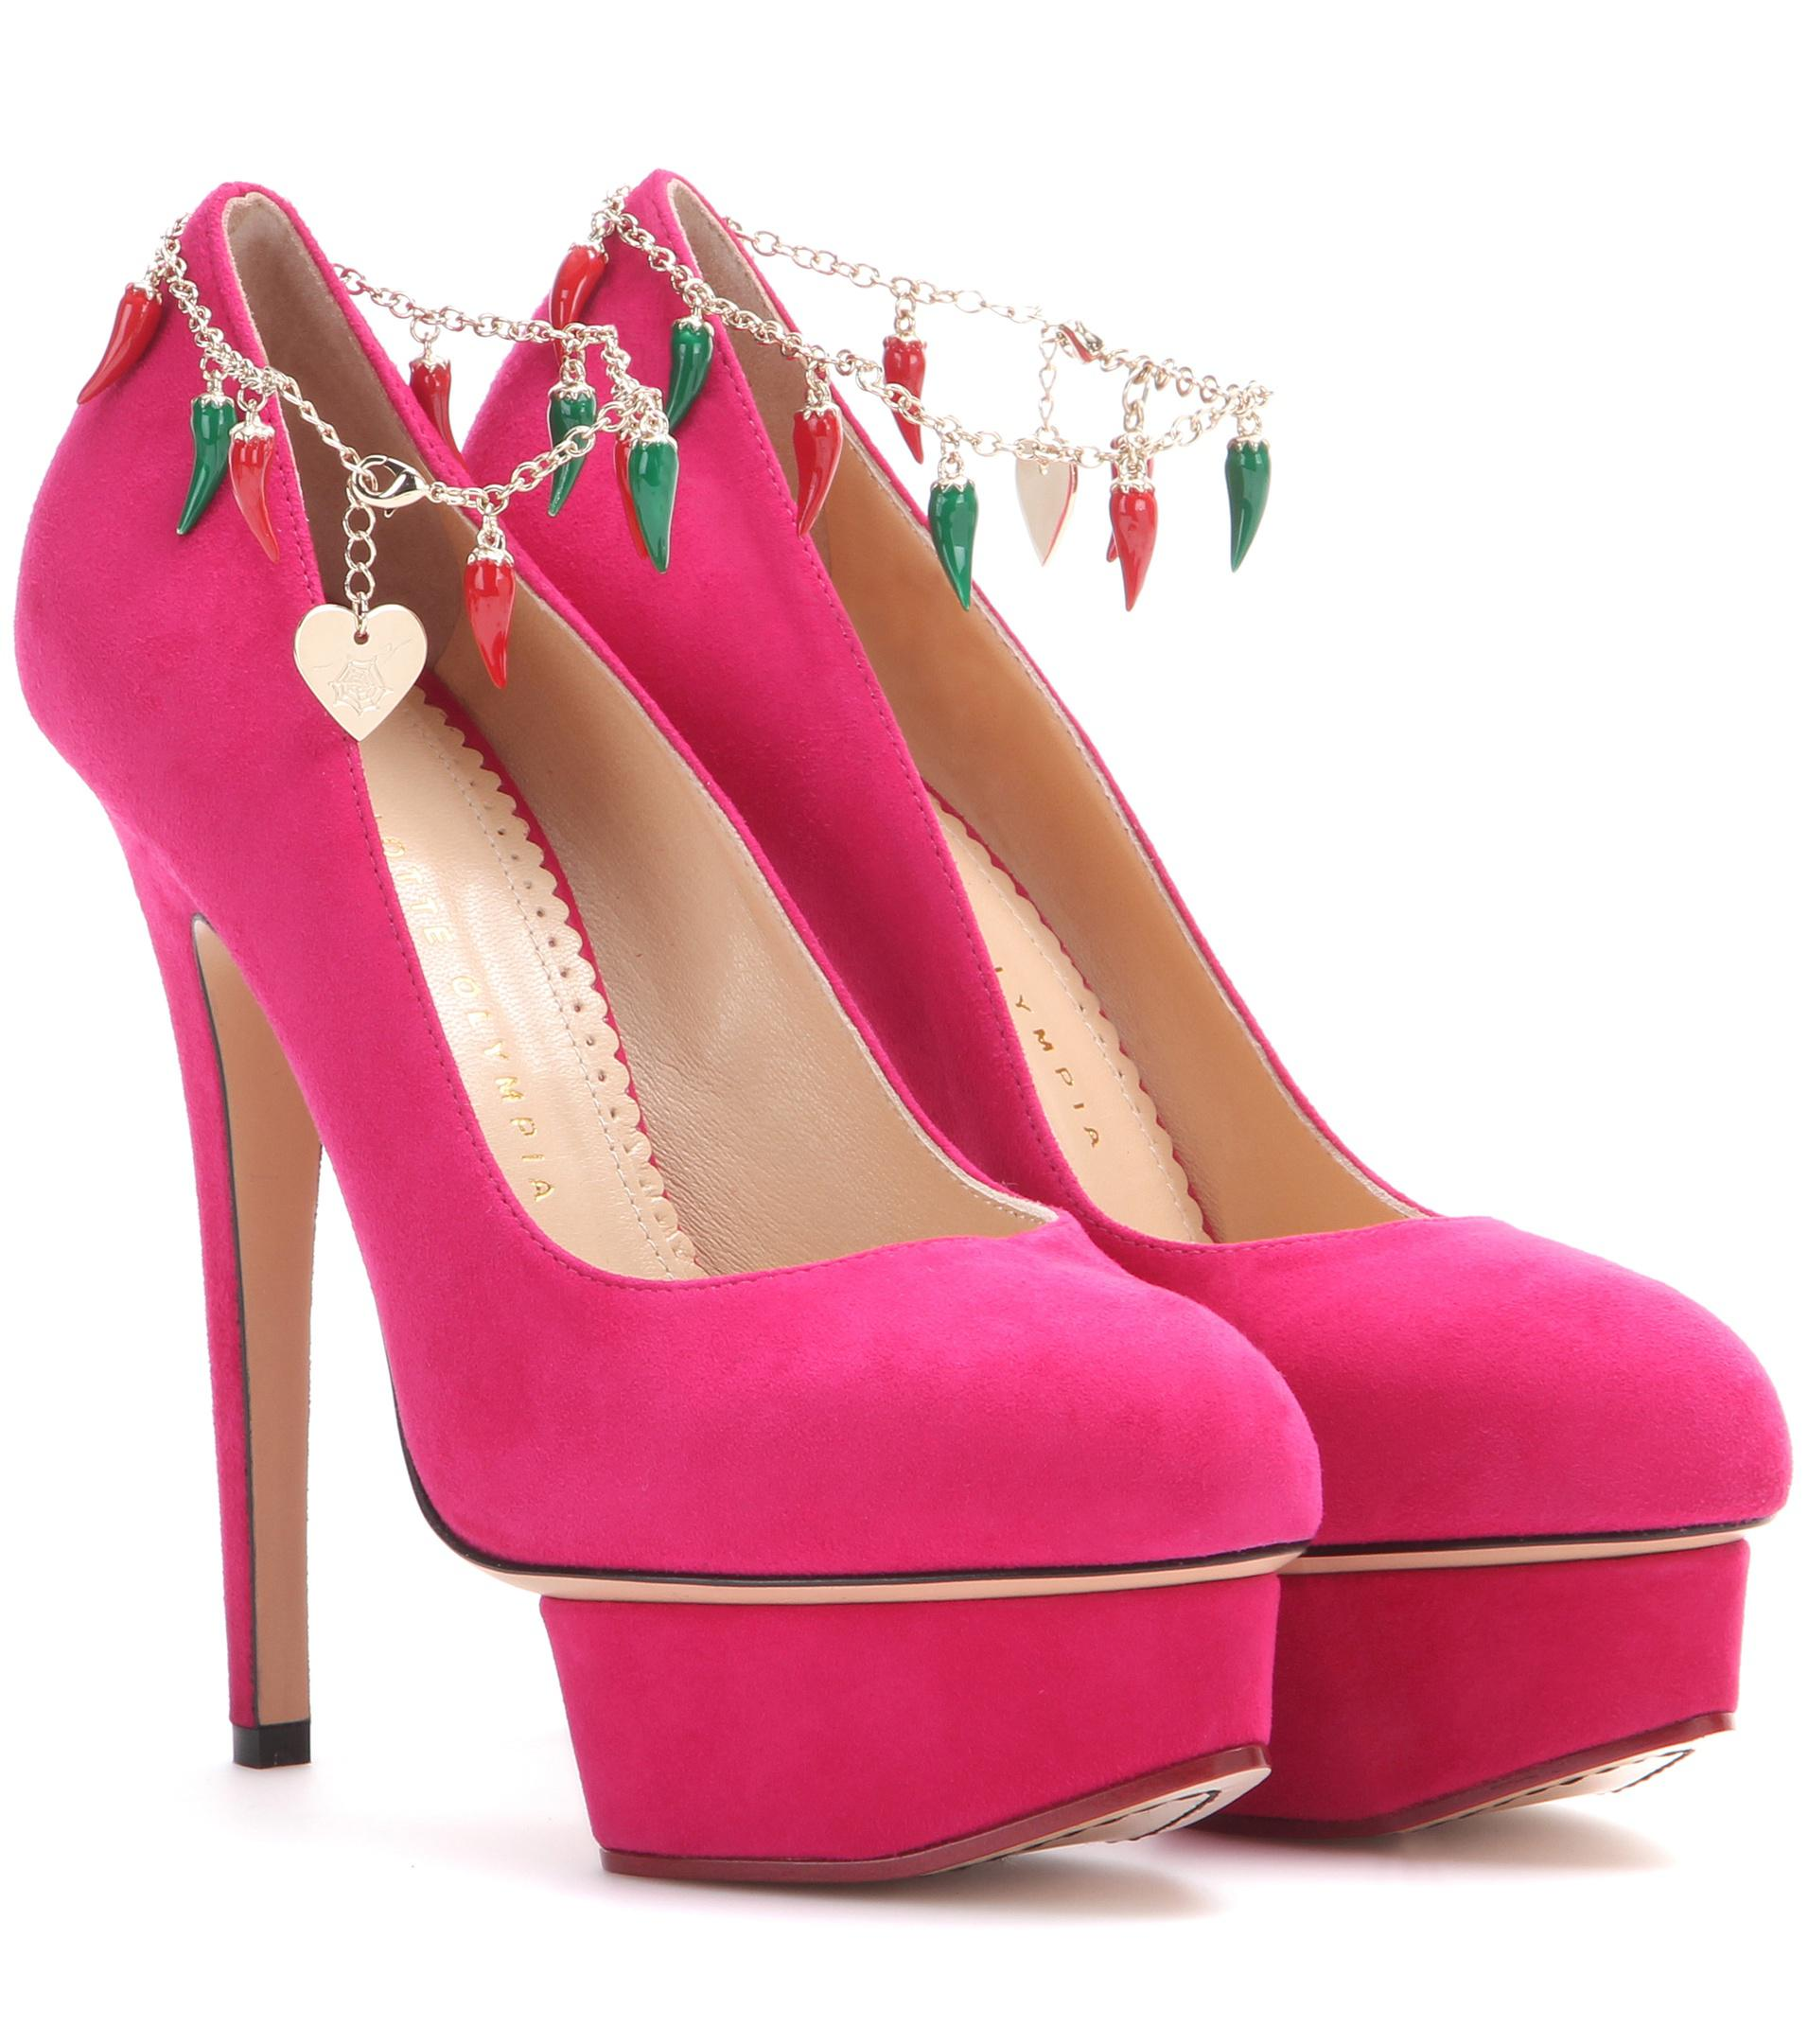 abafa80b674 Charlotte Olympia Hot Dolly Suede Pumps in Pink - Lyst